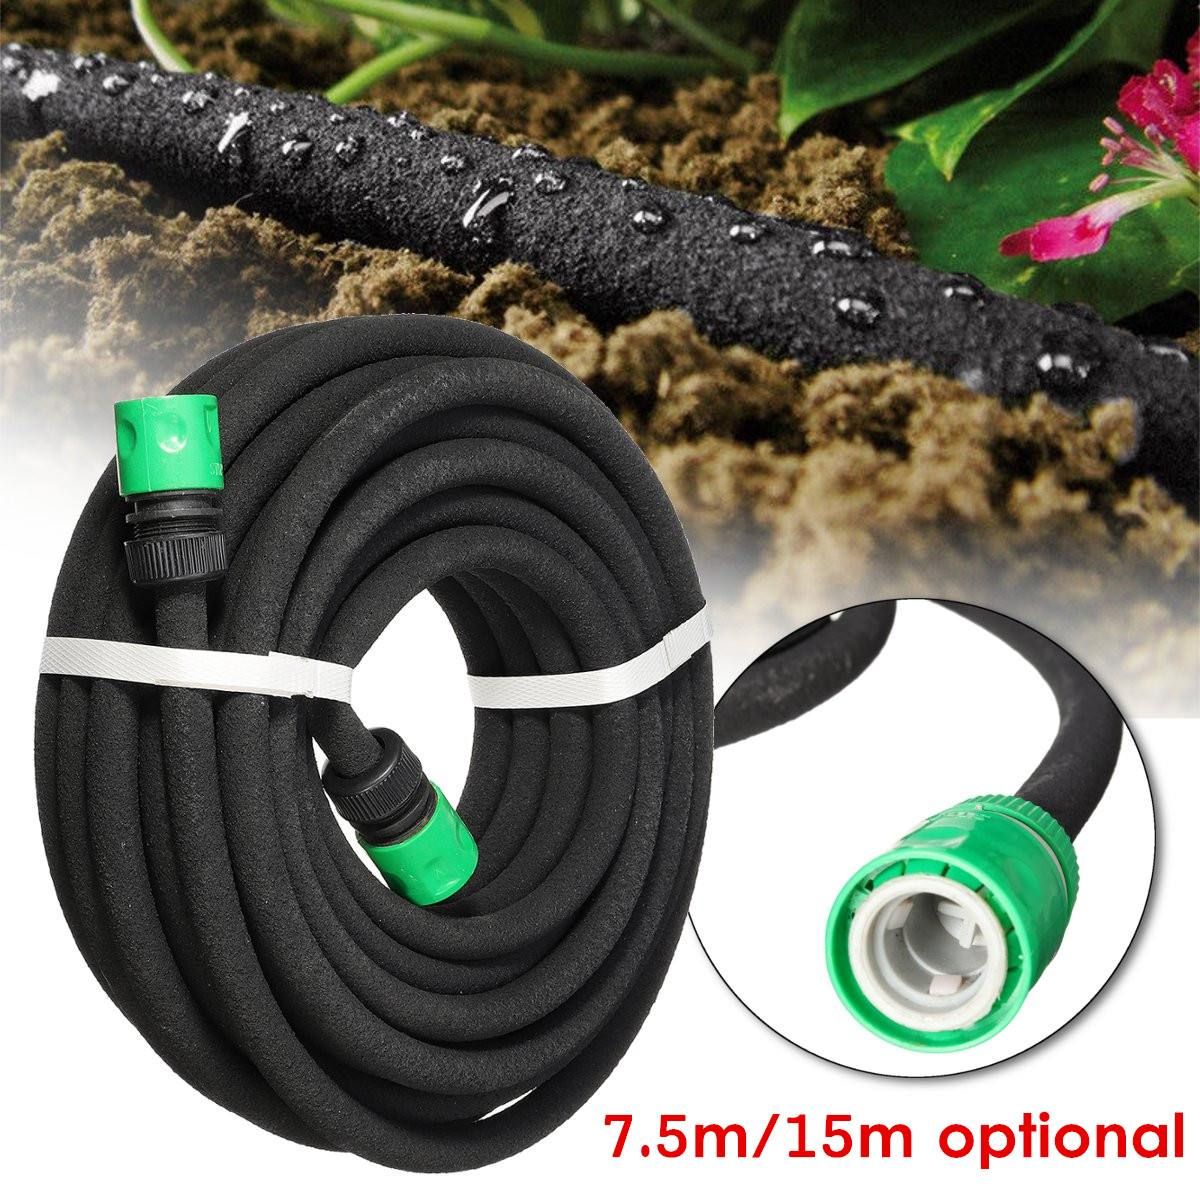 7.5/15m Garden Soaker Watering Hose Soaker Hose Irrigation Leaking Tube Durable Seepage Permeable Pipe Water Agriculture System|Garden Hoses & Reels| |  - title=